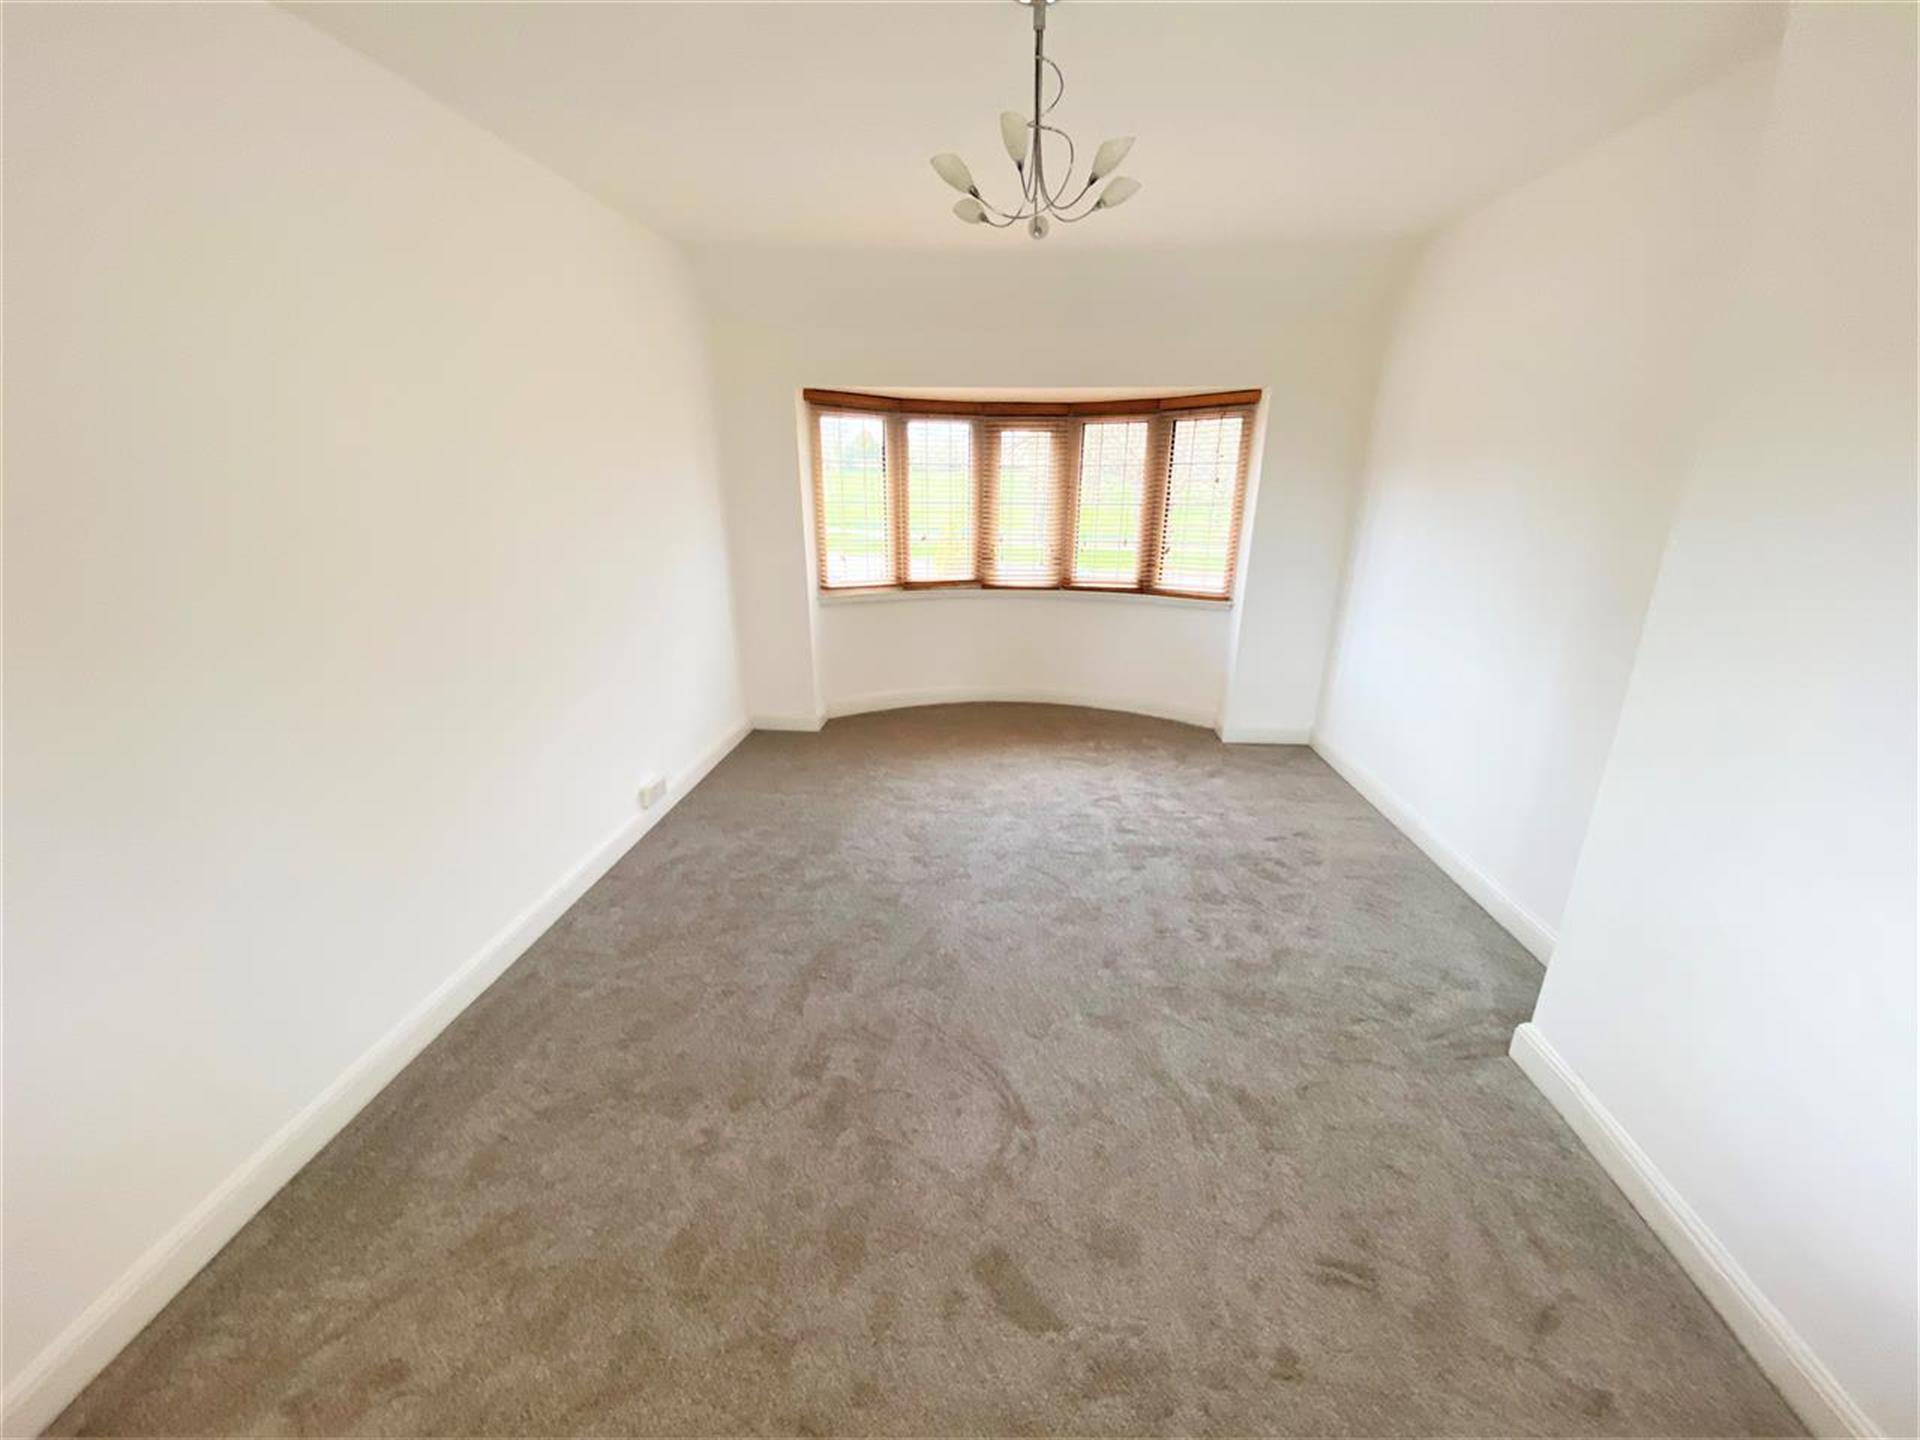 3 Bedroom Semi-detached House For Sale - Bedroom One